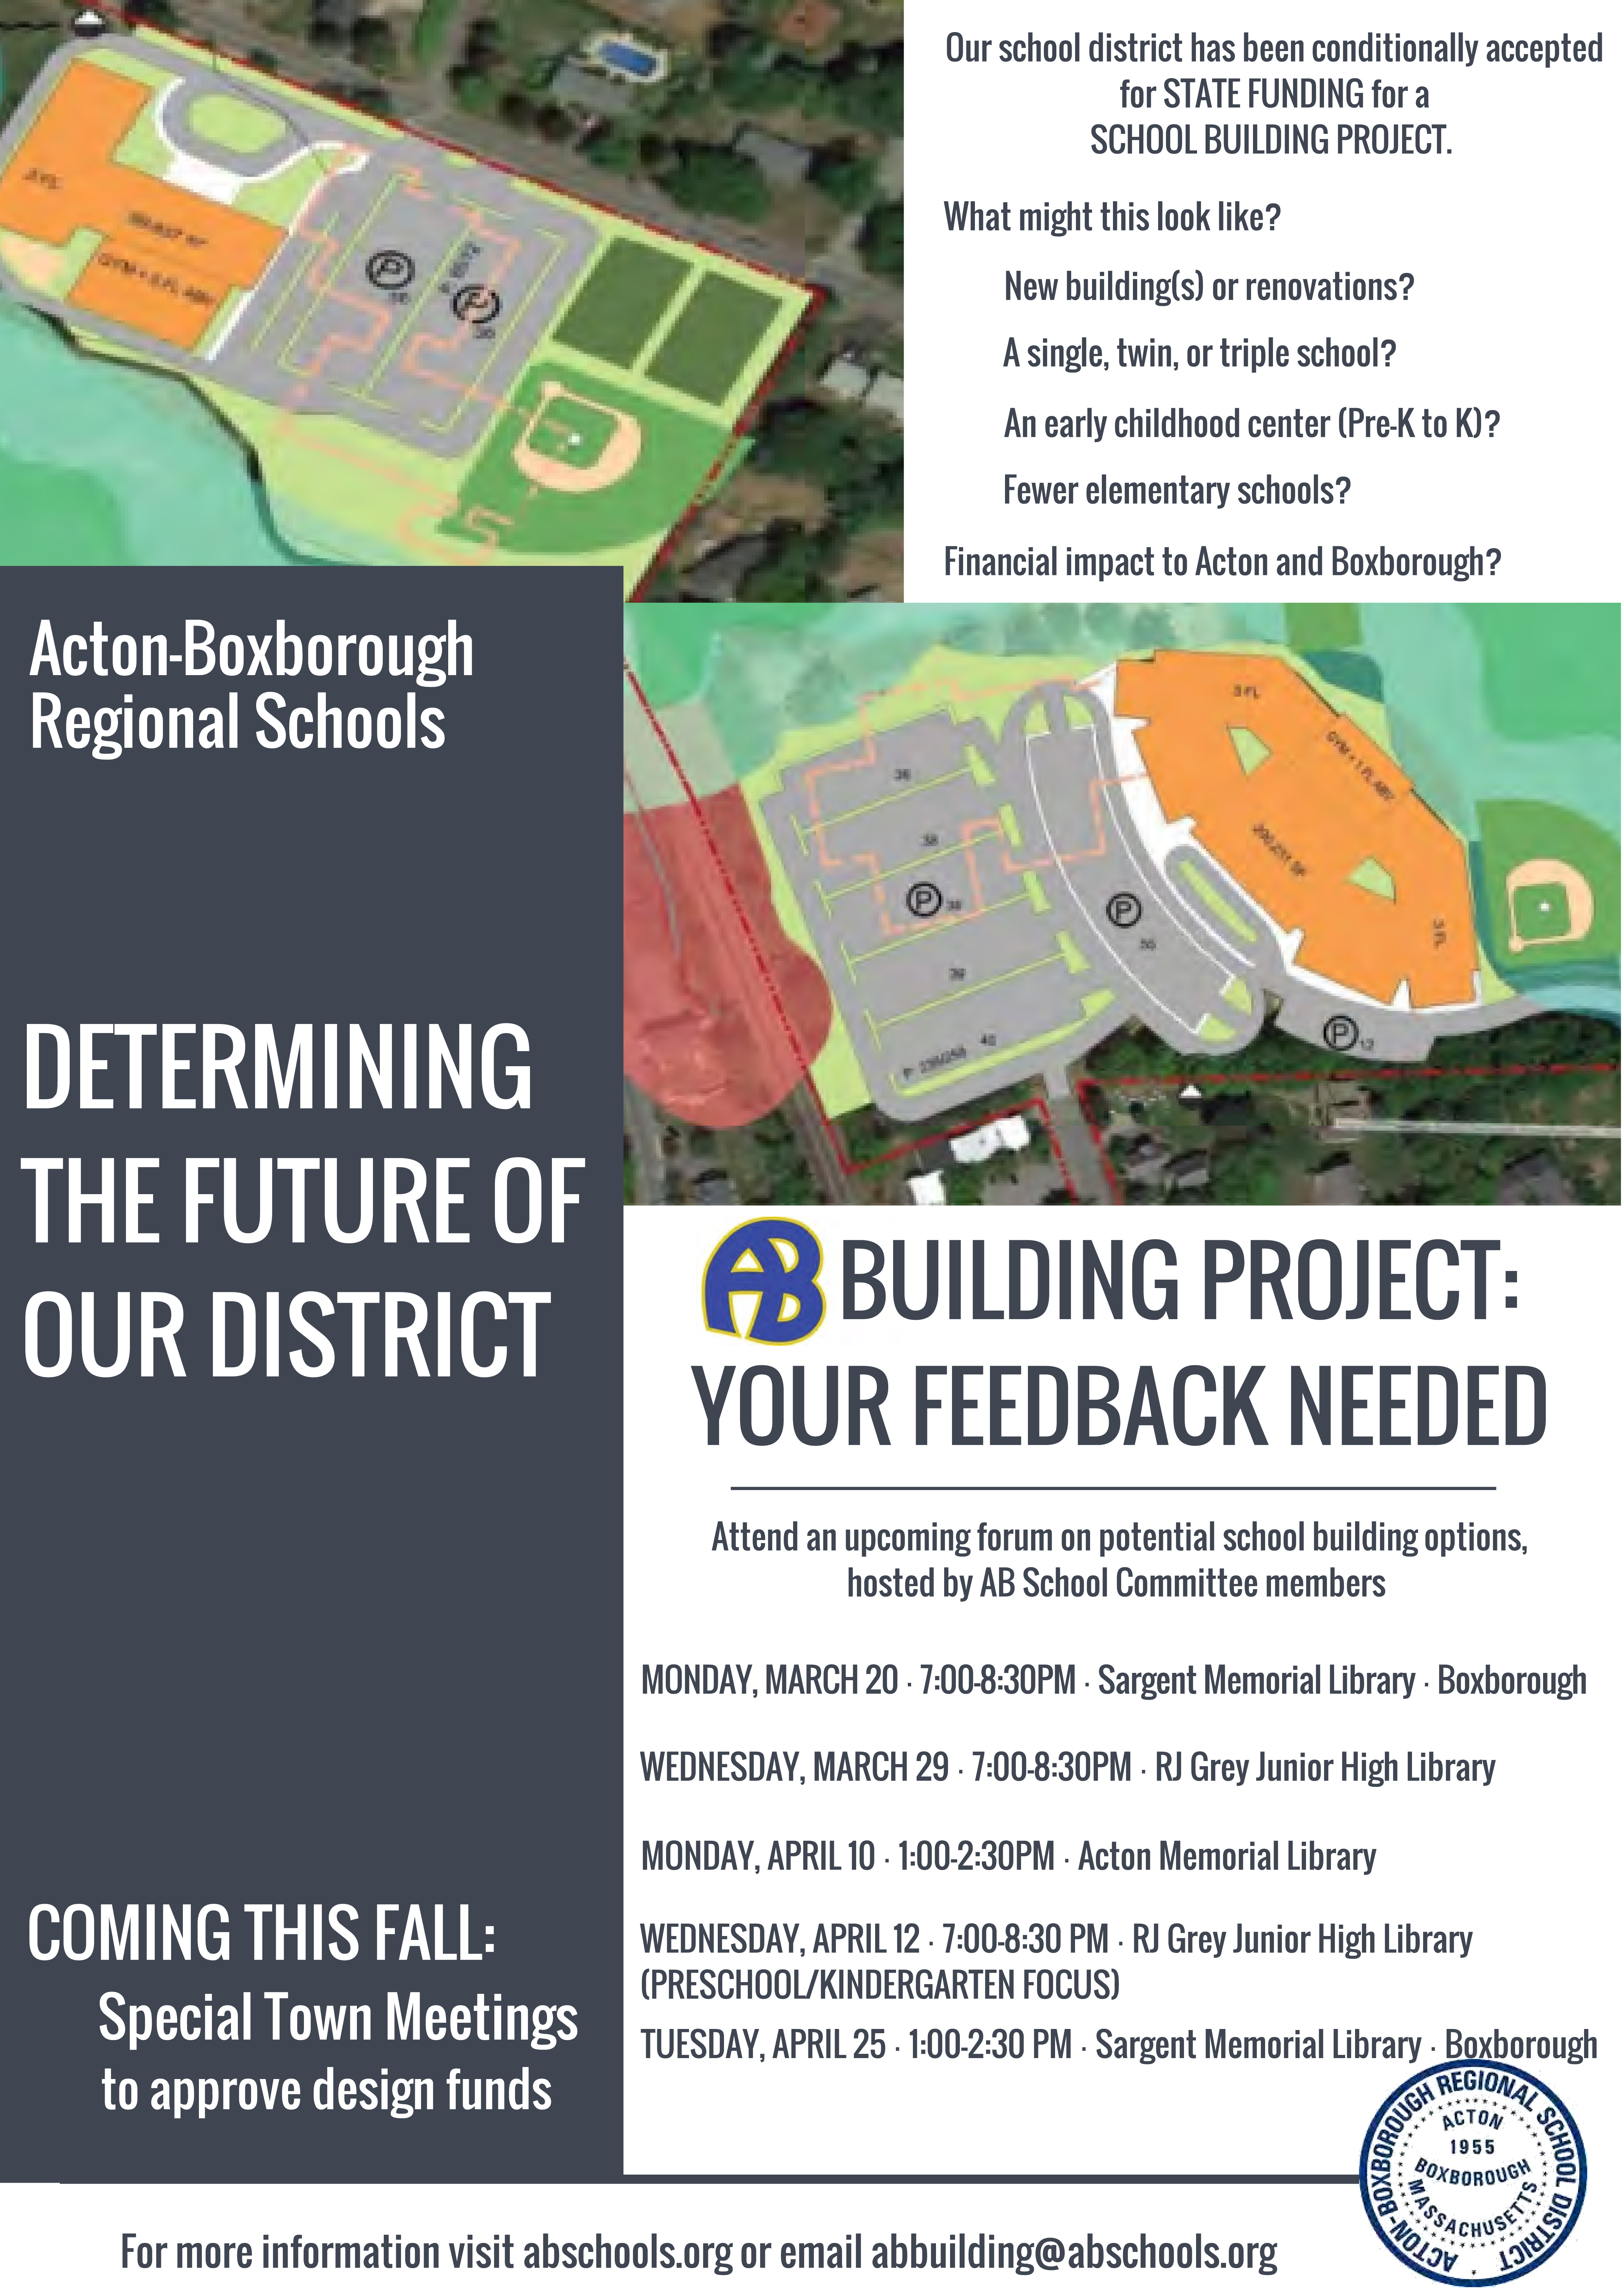 AB Building Project - Forum on potential school building options @ R.J. Grey Library | Acton | Massachusetts | United States